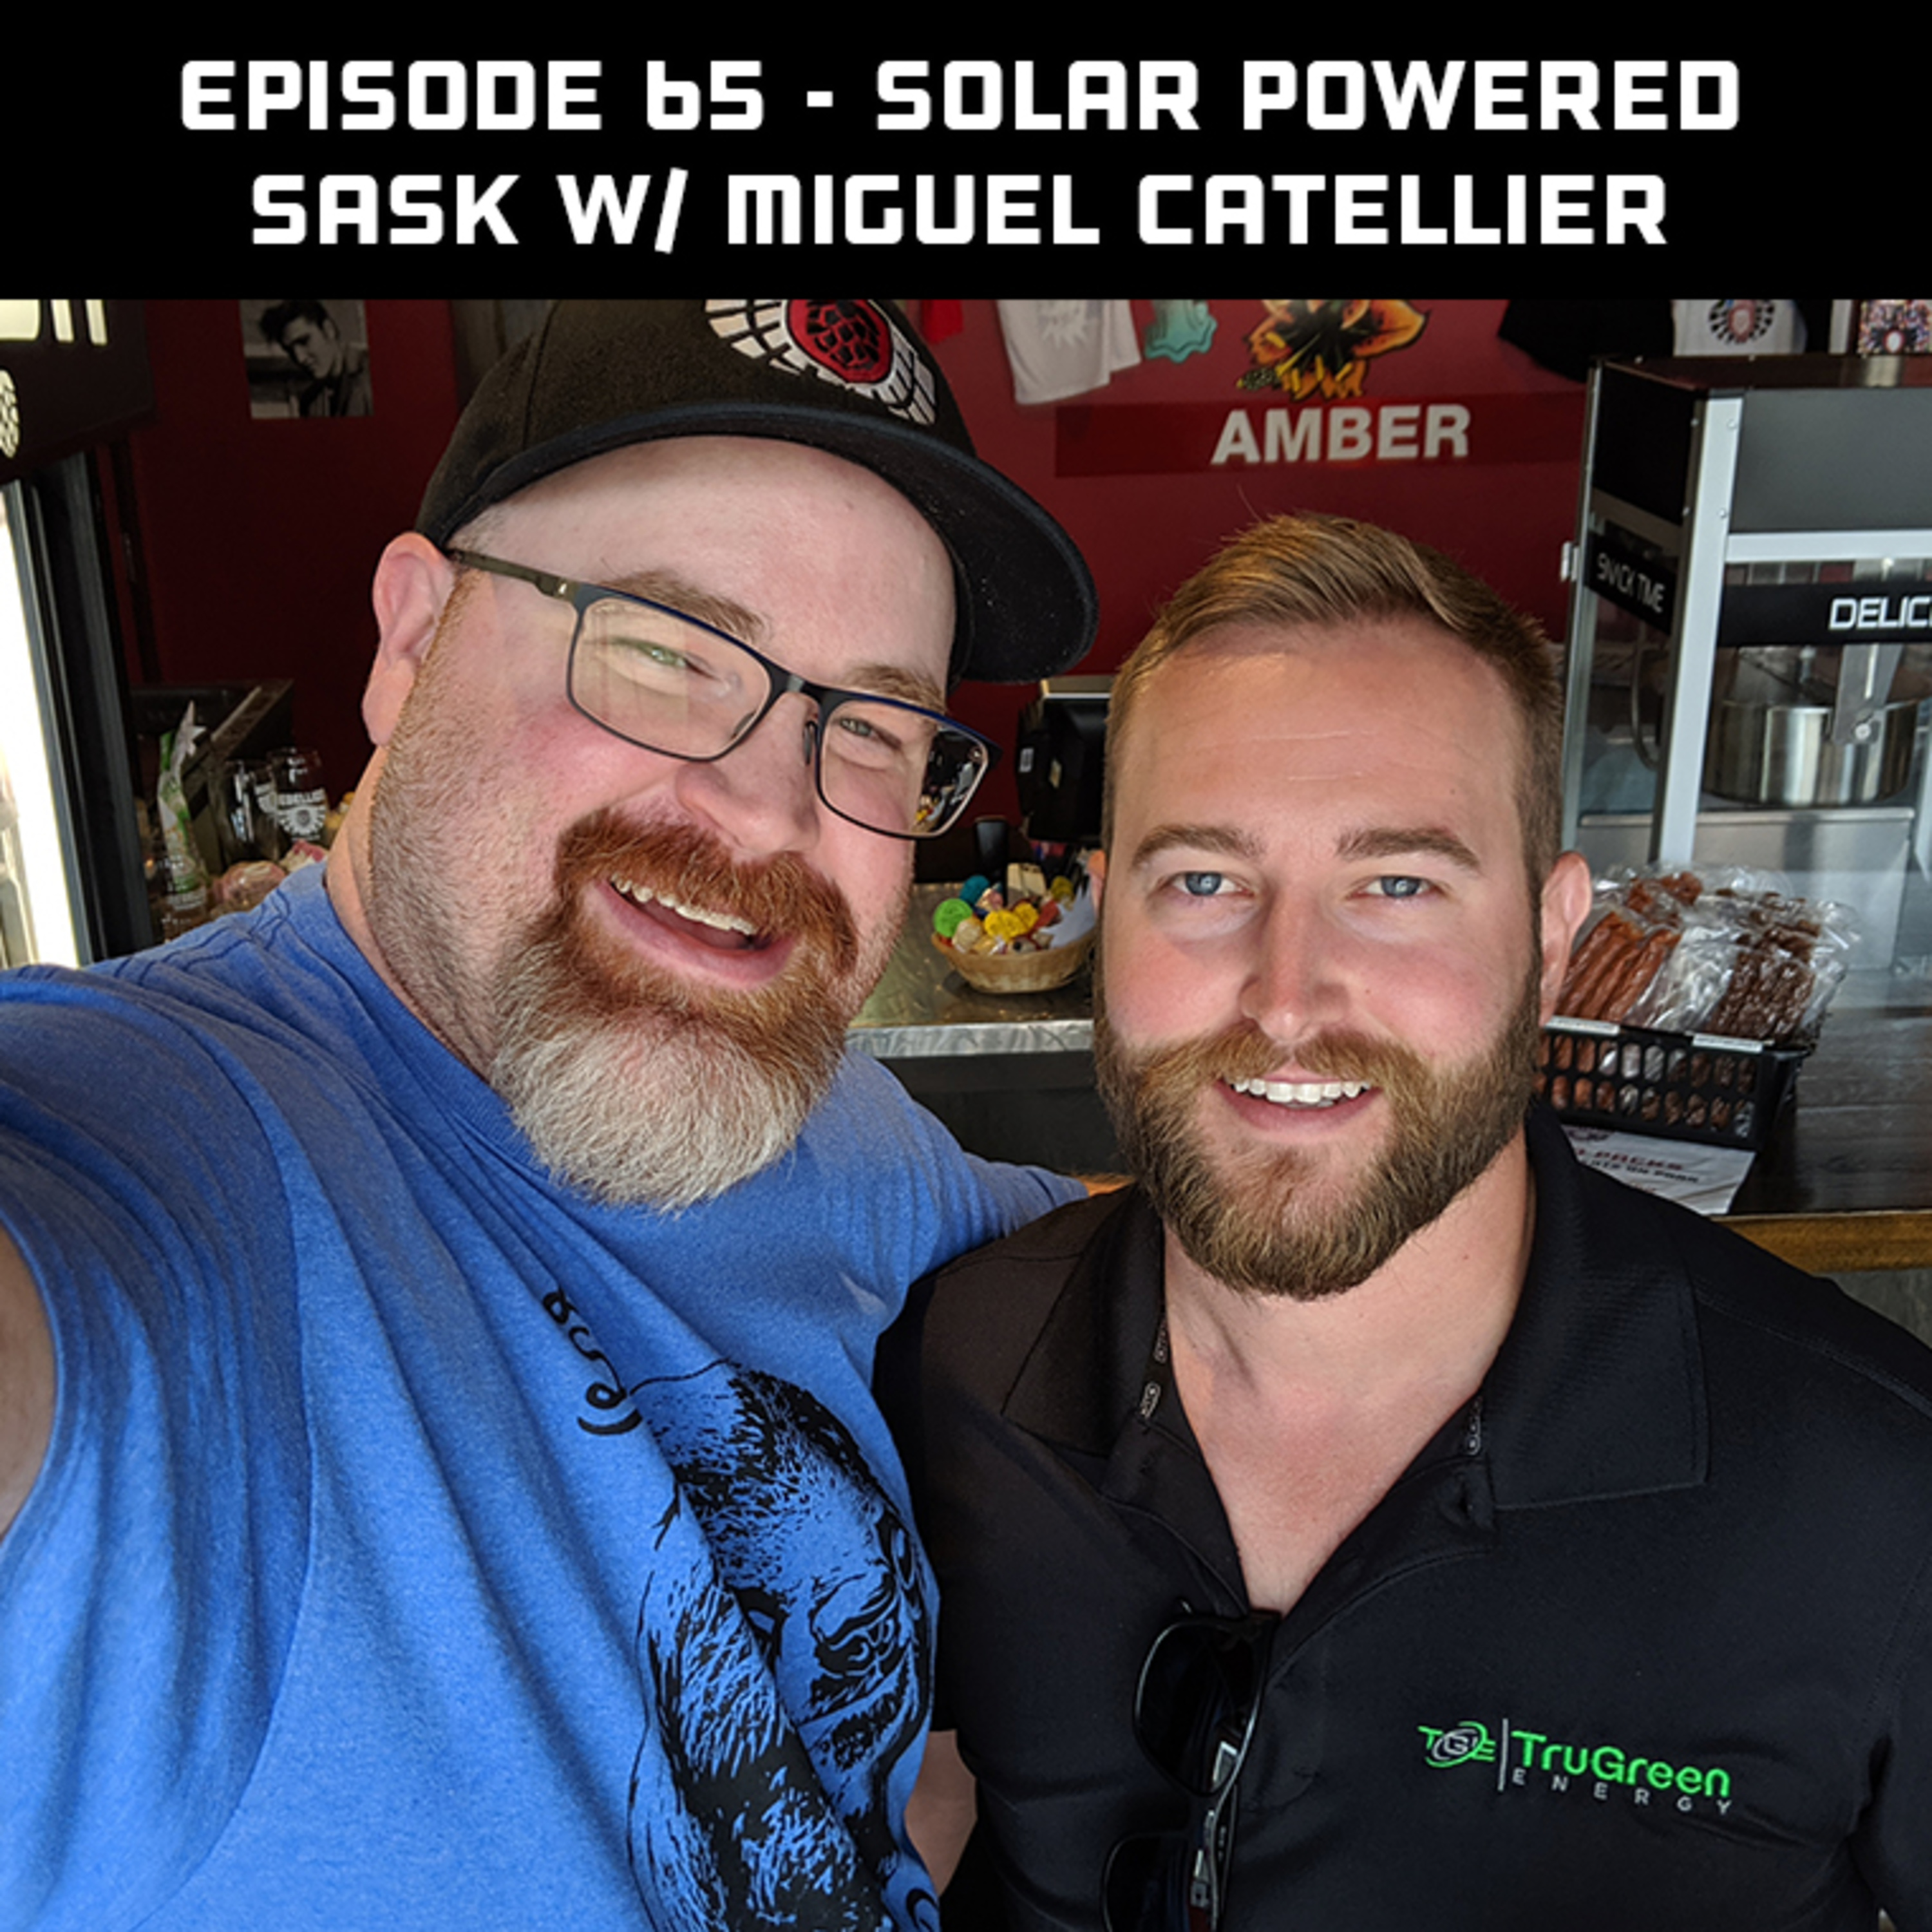 Solar Powered Sask with Miguel Catellier